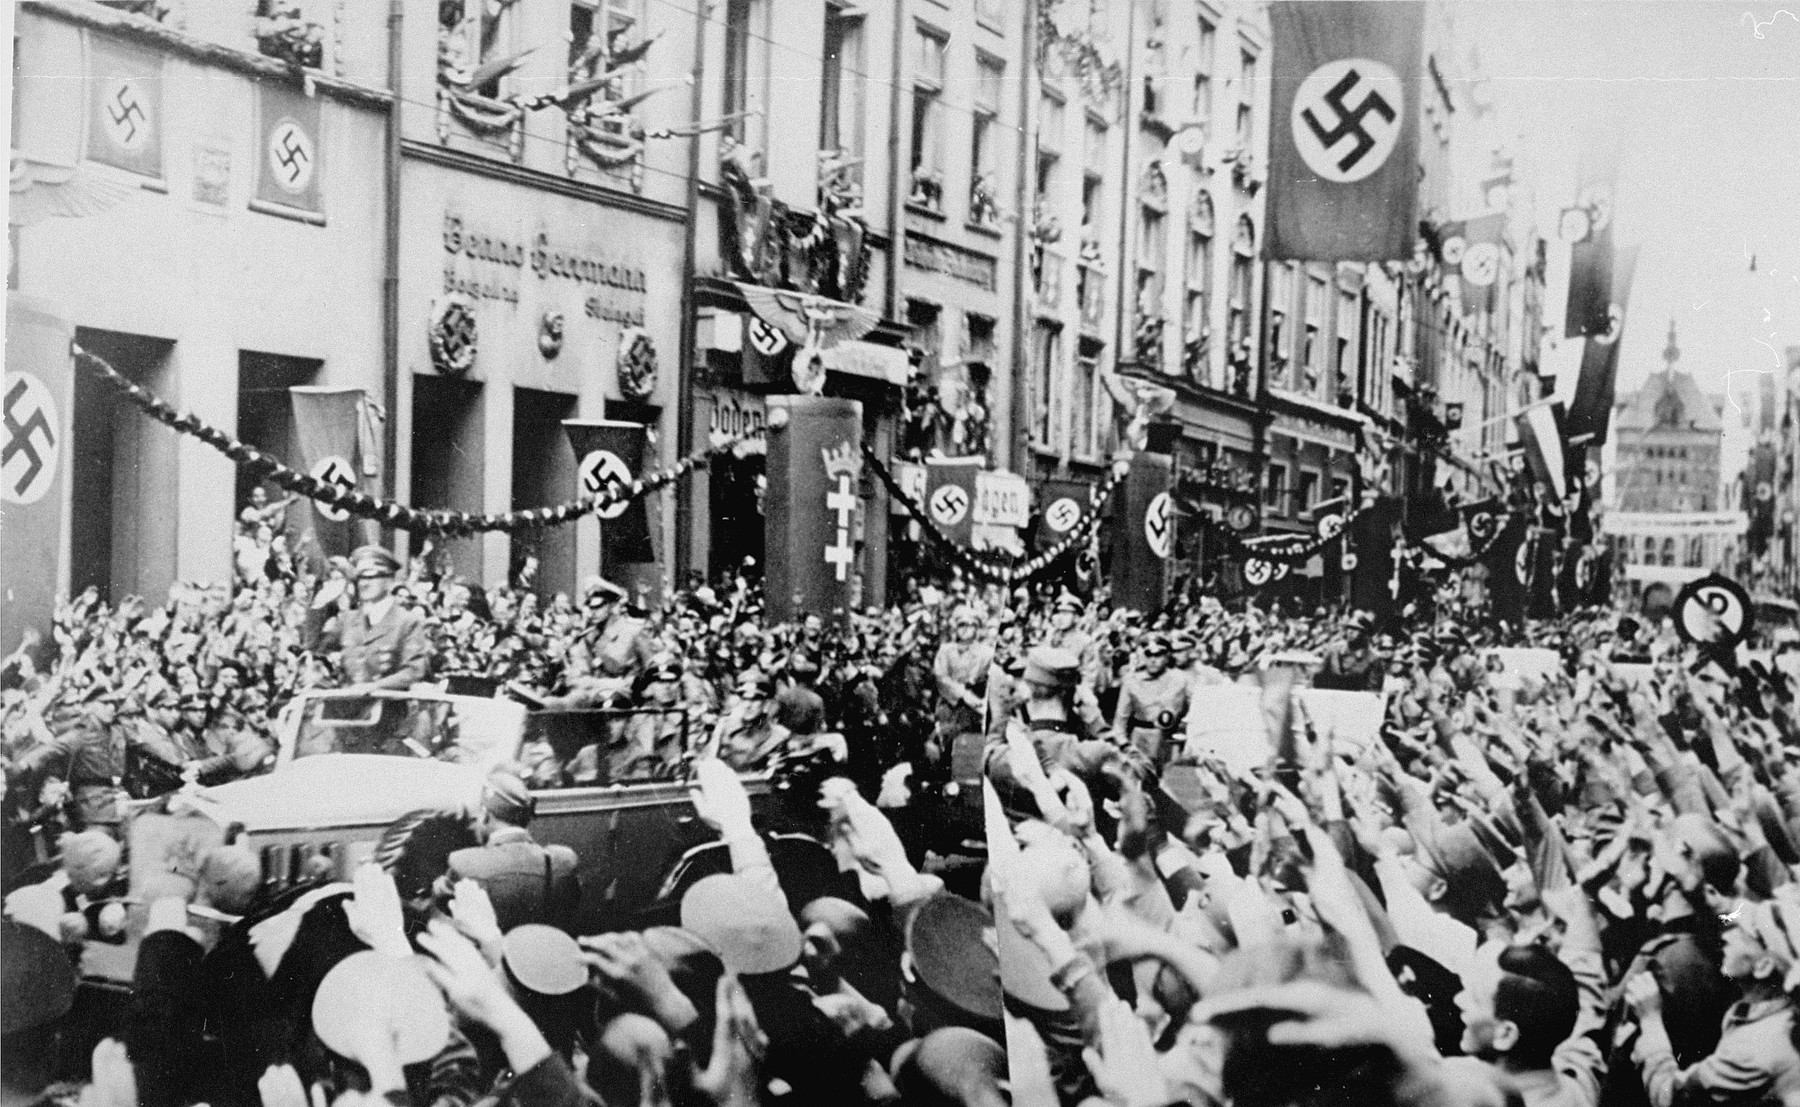 Saluting Germans greet Adolf Hitler during his visit to Danzig.